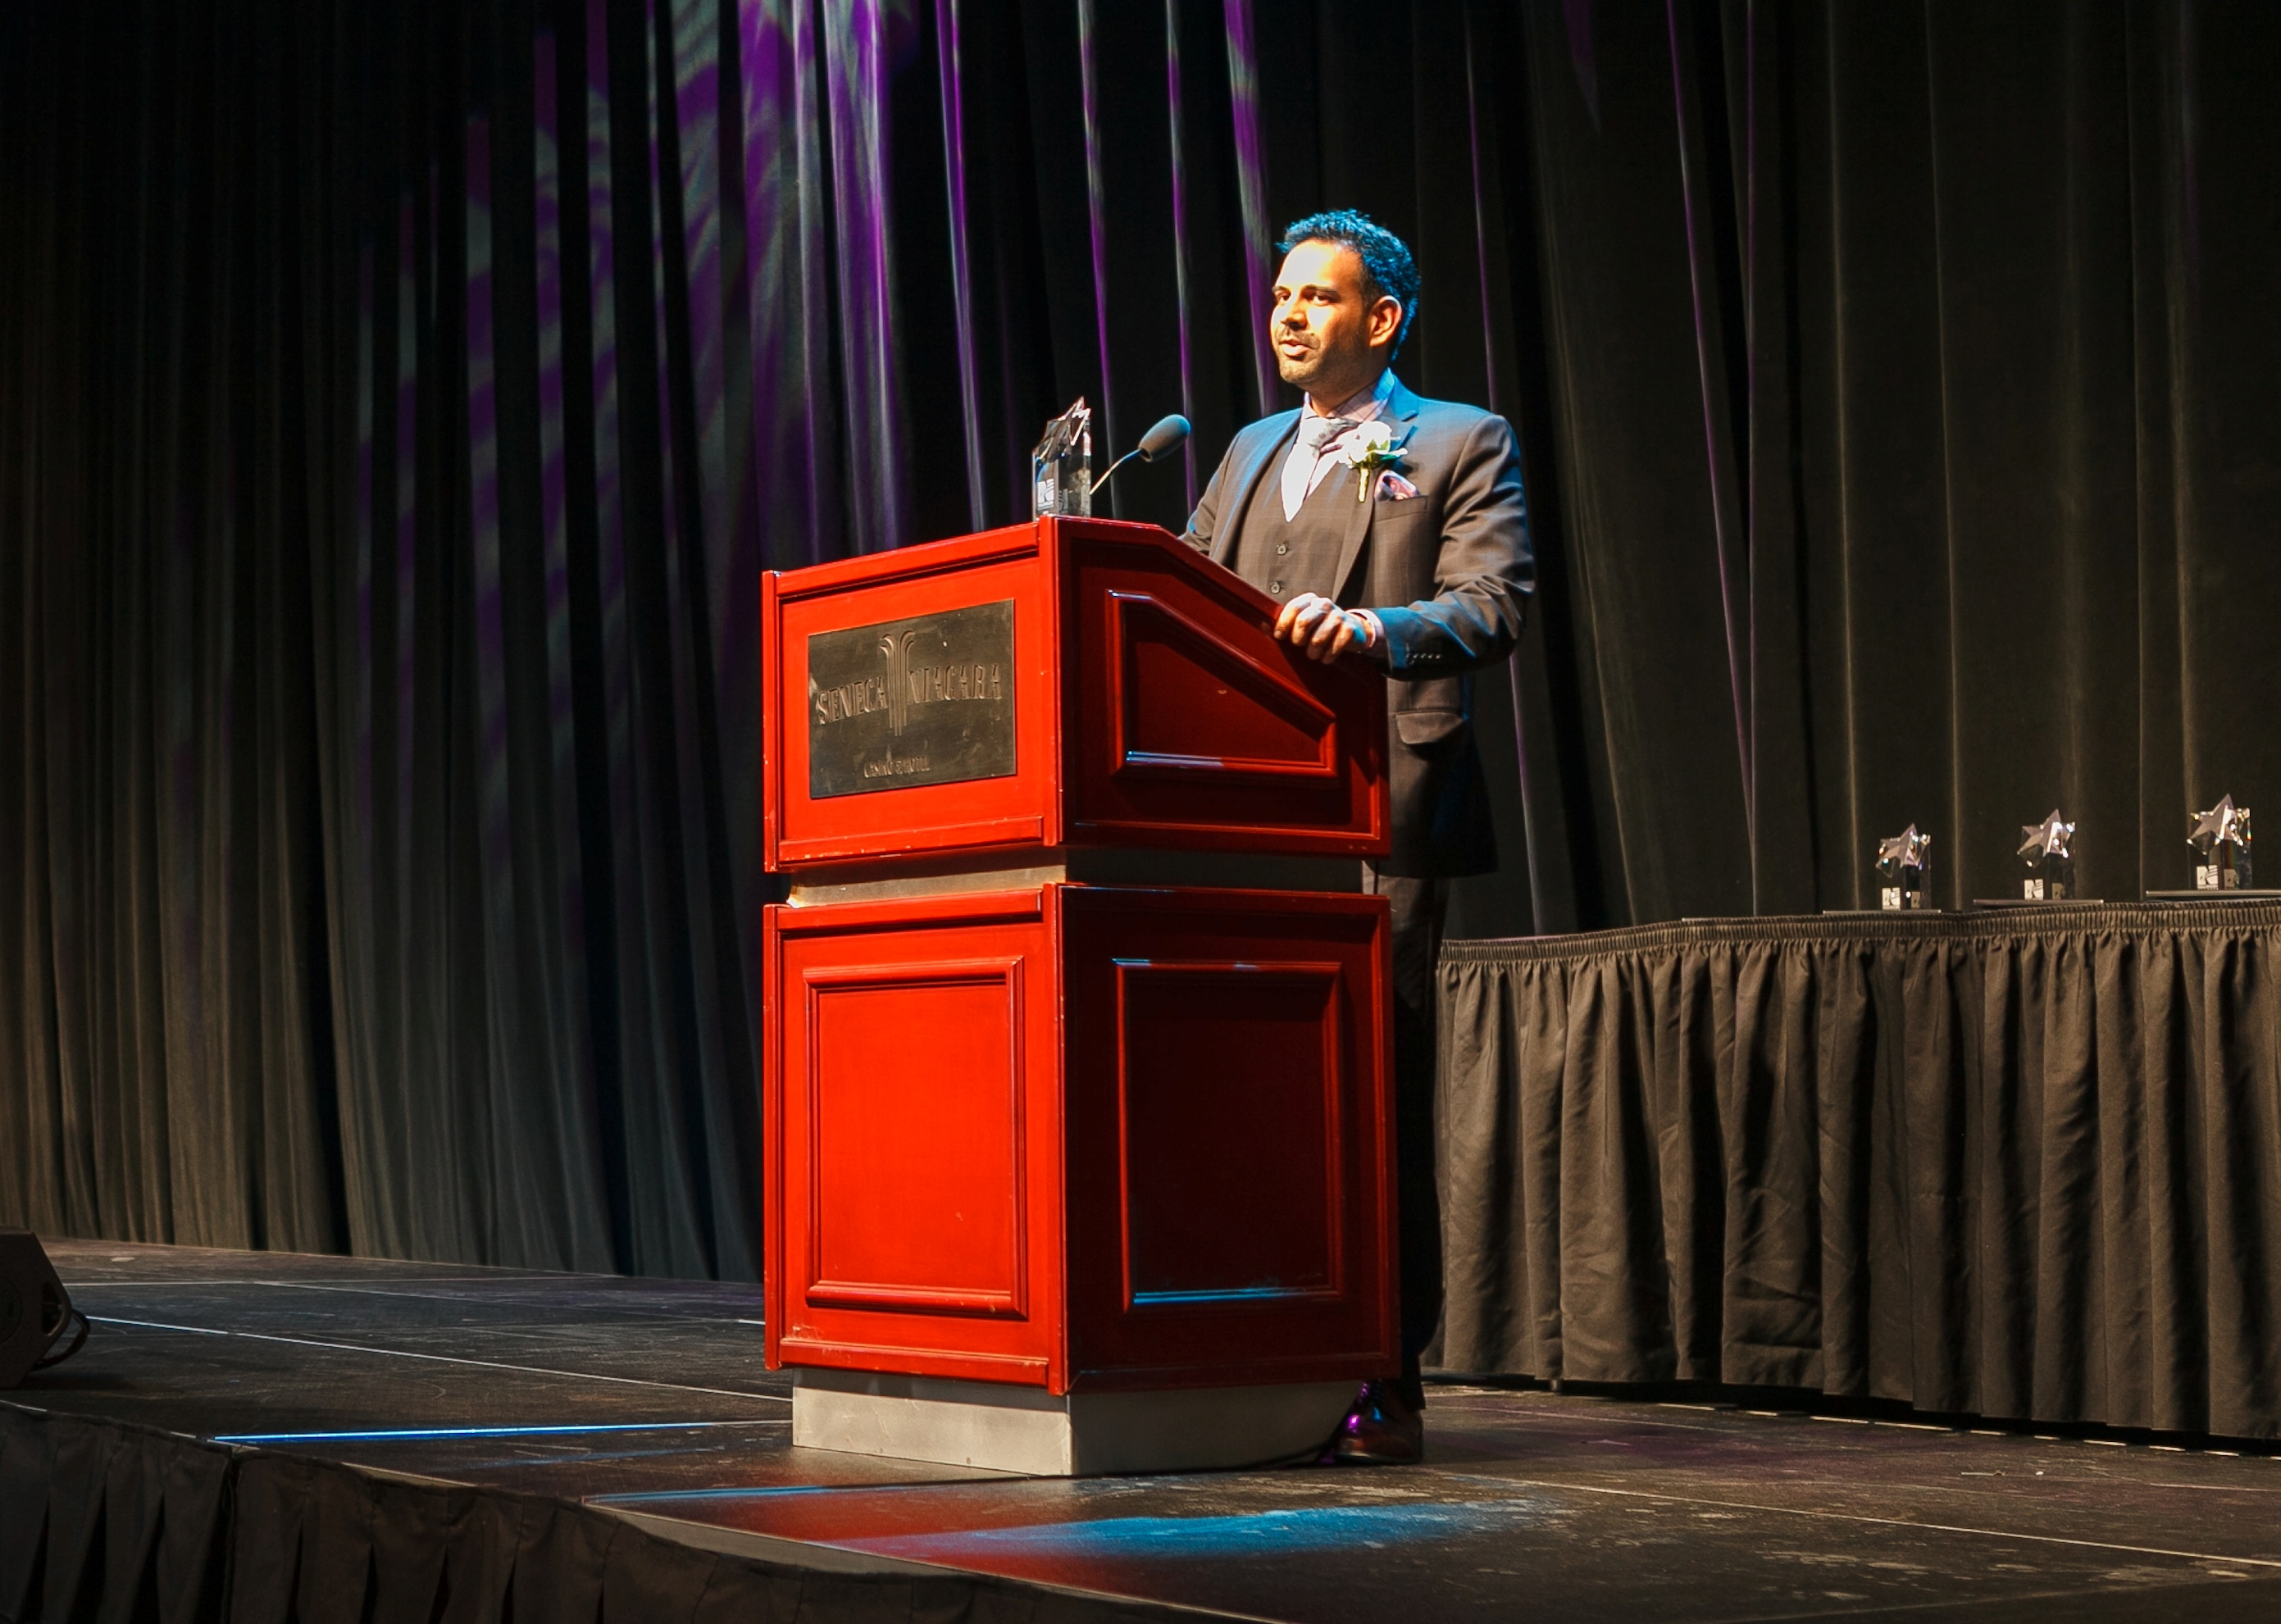 Faisal Merani accepts honor of 2015 Business Person of the Year